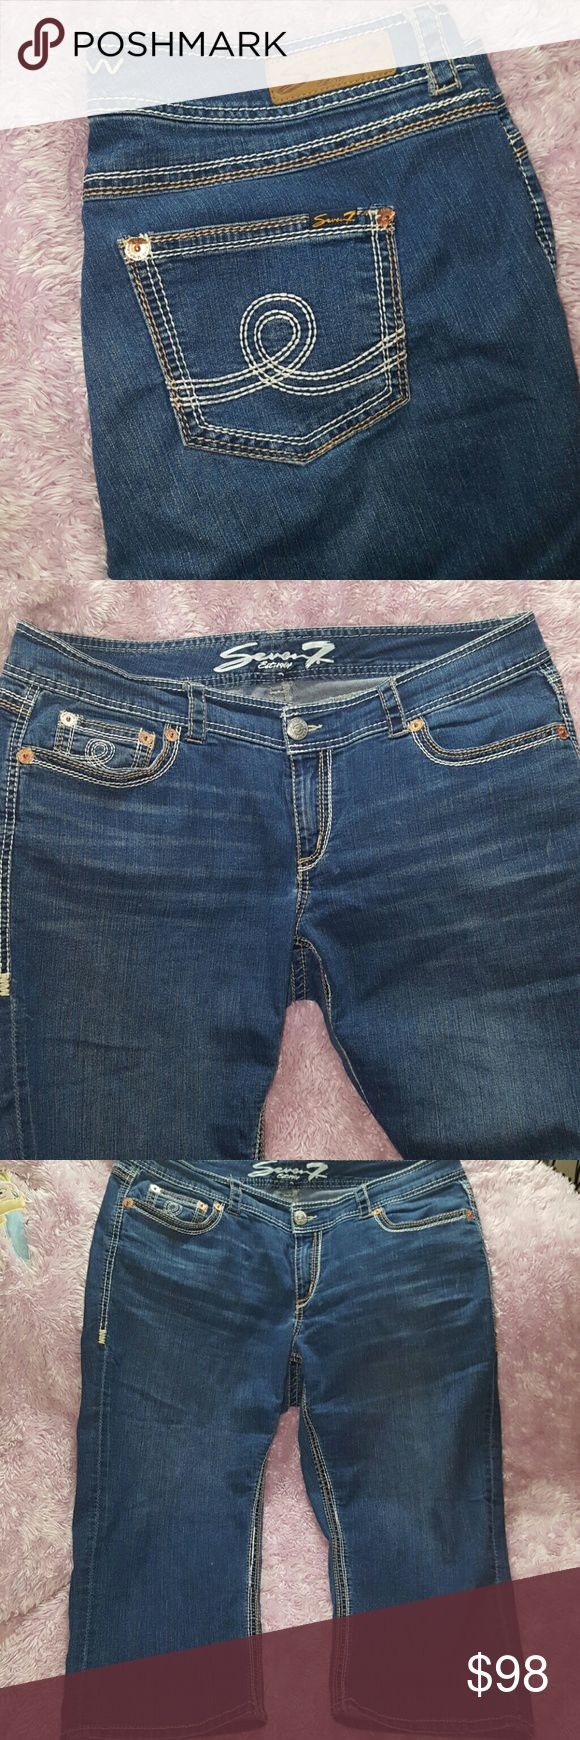 SEVEN7 LUXE CAPRI Jeans ~ New w/o Tags SEVEN7 LUXE CAPRI Jeans ~ New w/o Tags ~ Size 20 81% cotton 17% polyester 2% spandex. AMAZING HIGH QUALITY CAPRIS!! I ship daily (#A1) Seven7 Jeans Ankle & Cropped